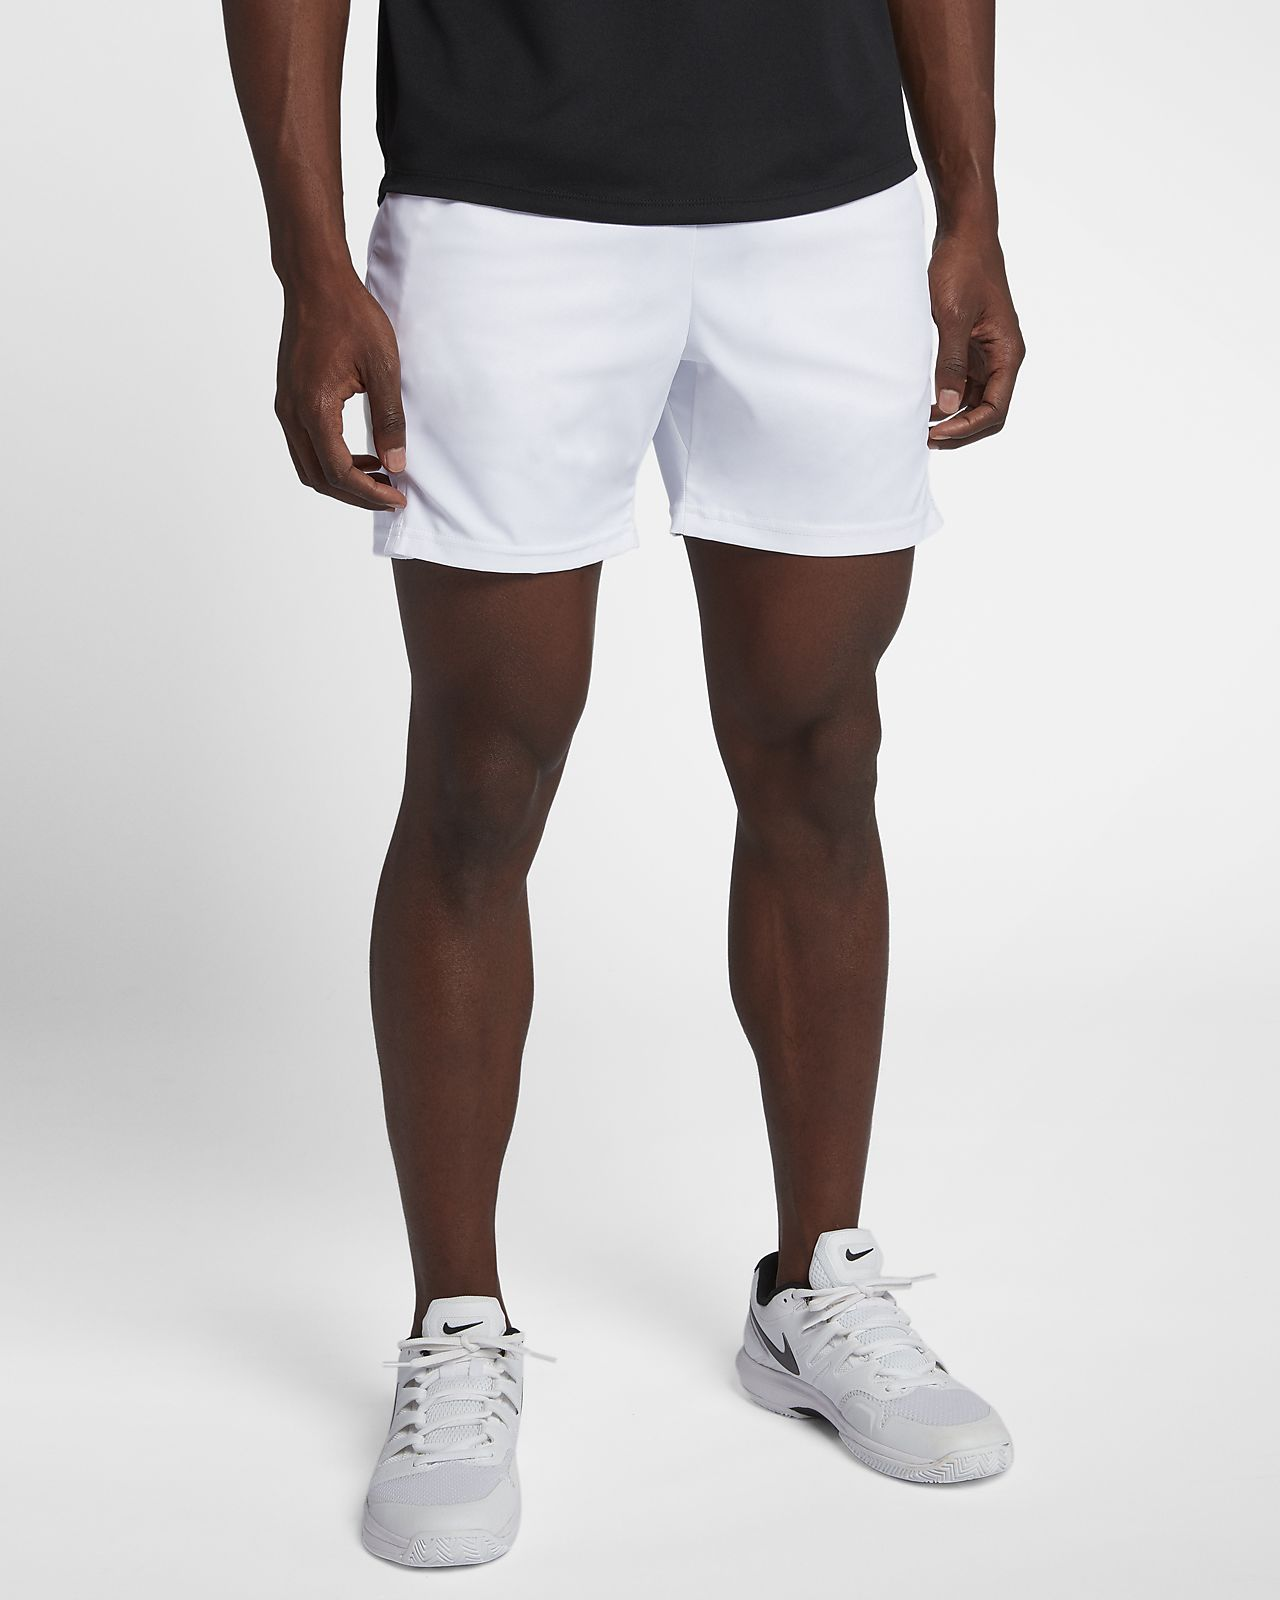 NikeCourt Dri-FIT Men's Tennis Shorts